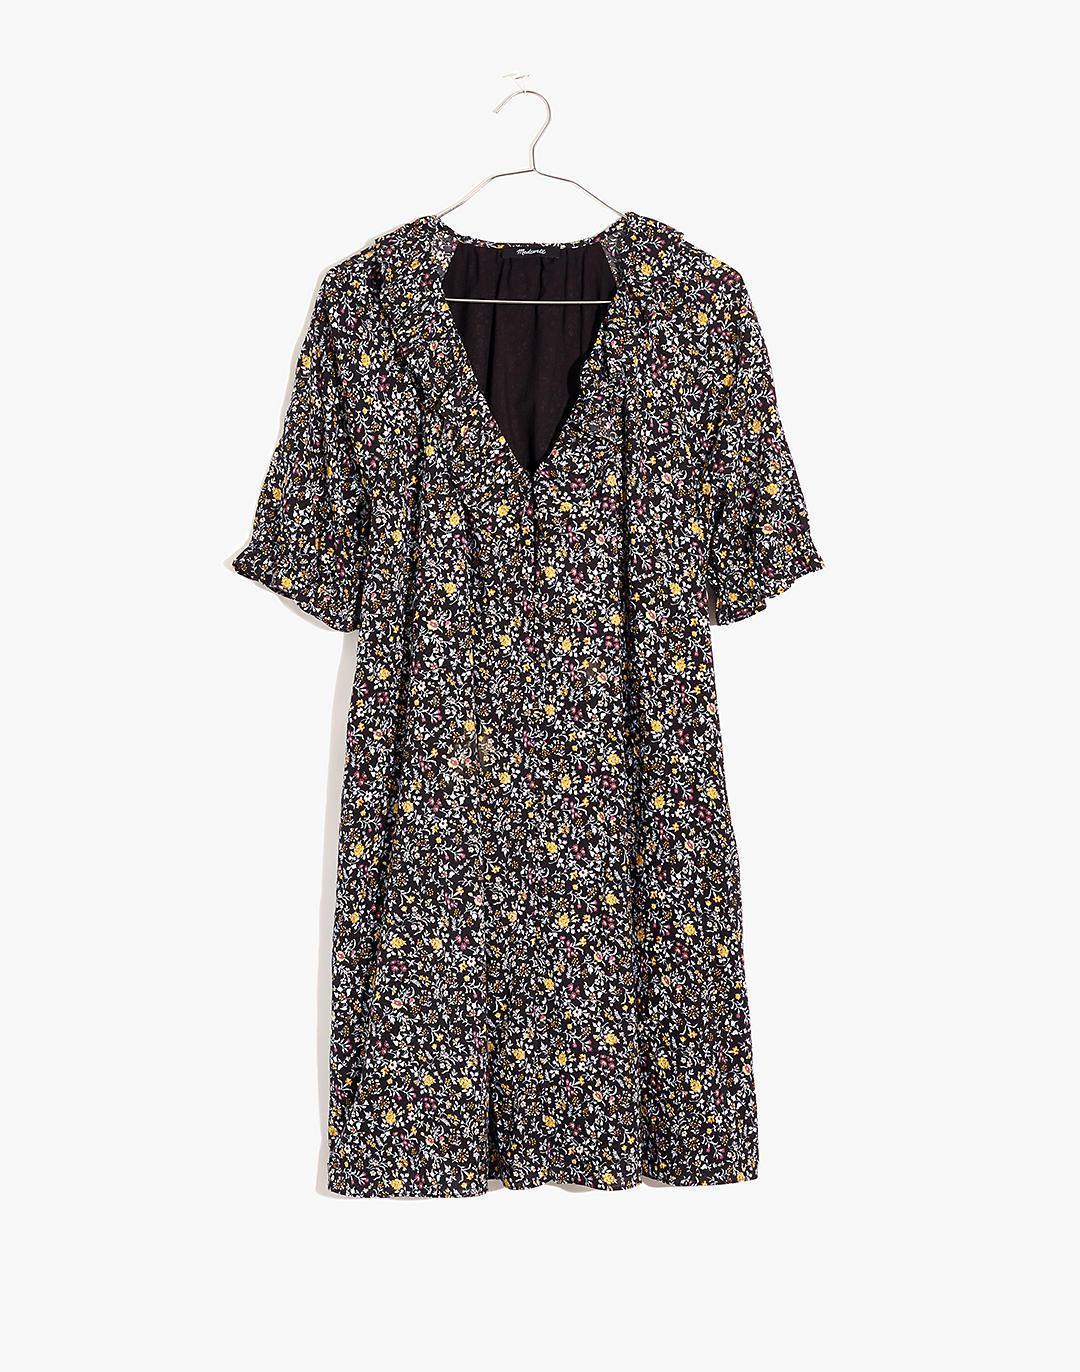 Ruffle Button-Front Trapeze Dress in Folkmagic Floral 5